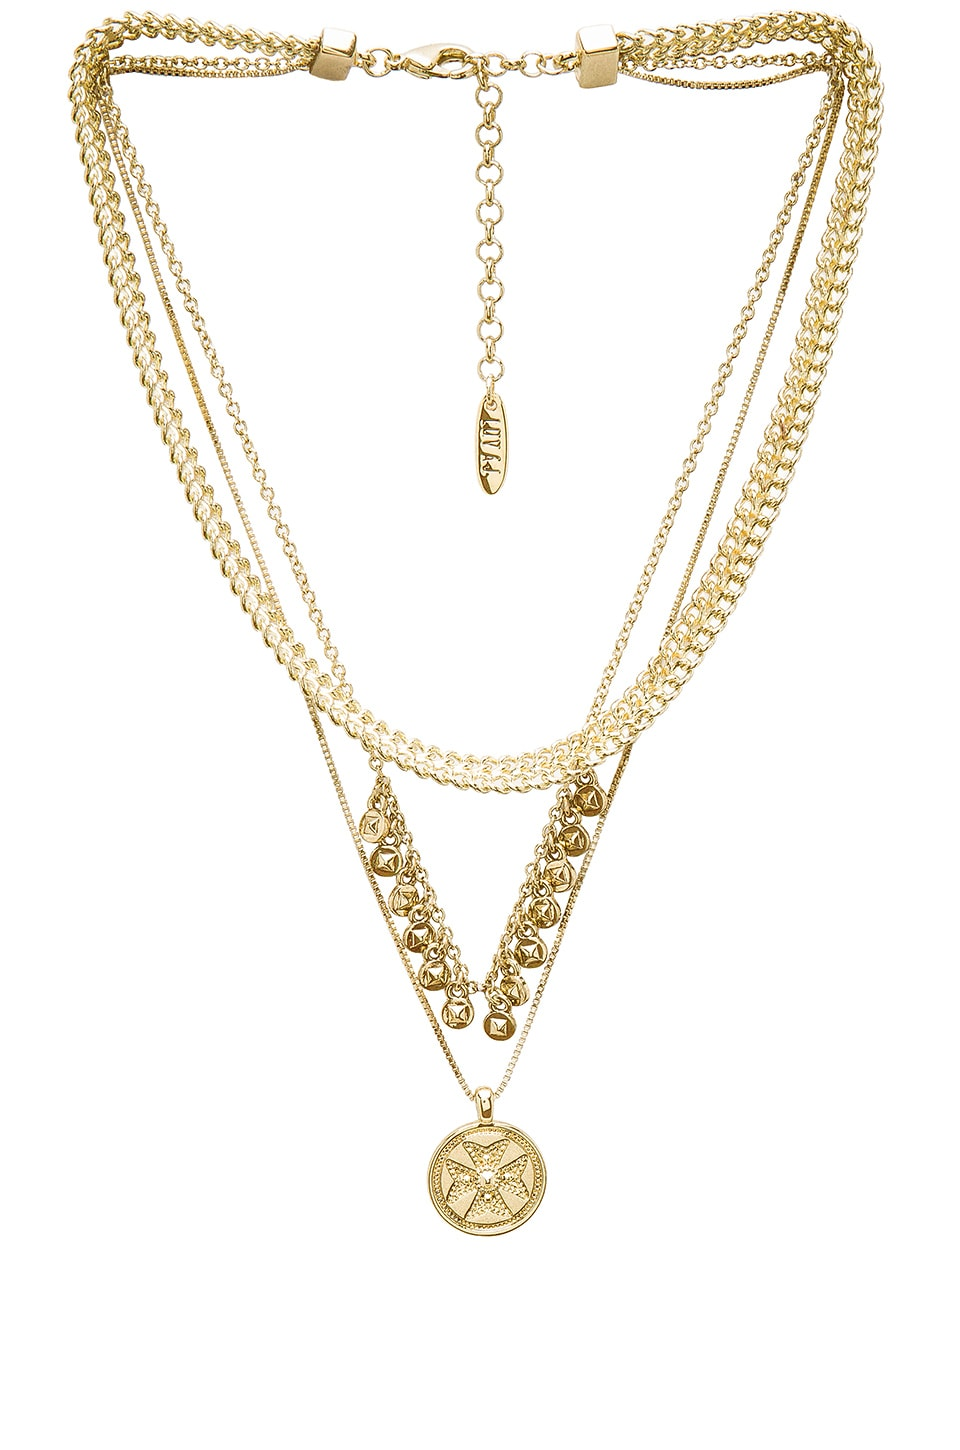 Luv AJ x SABO LUXE Noa Coin Charm Necklace in Antique Gold